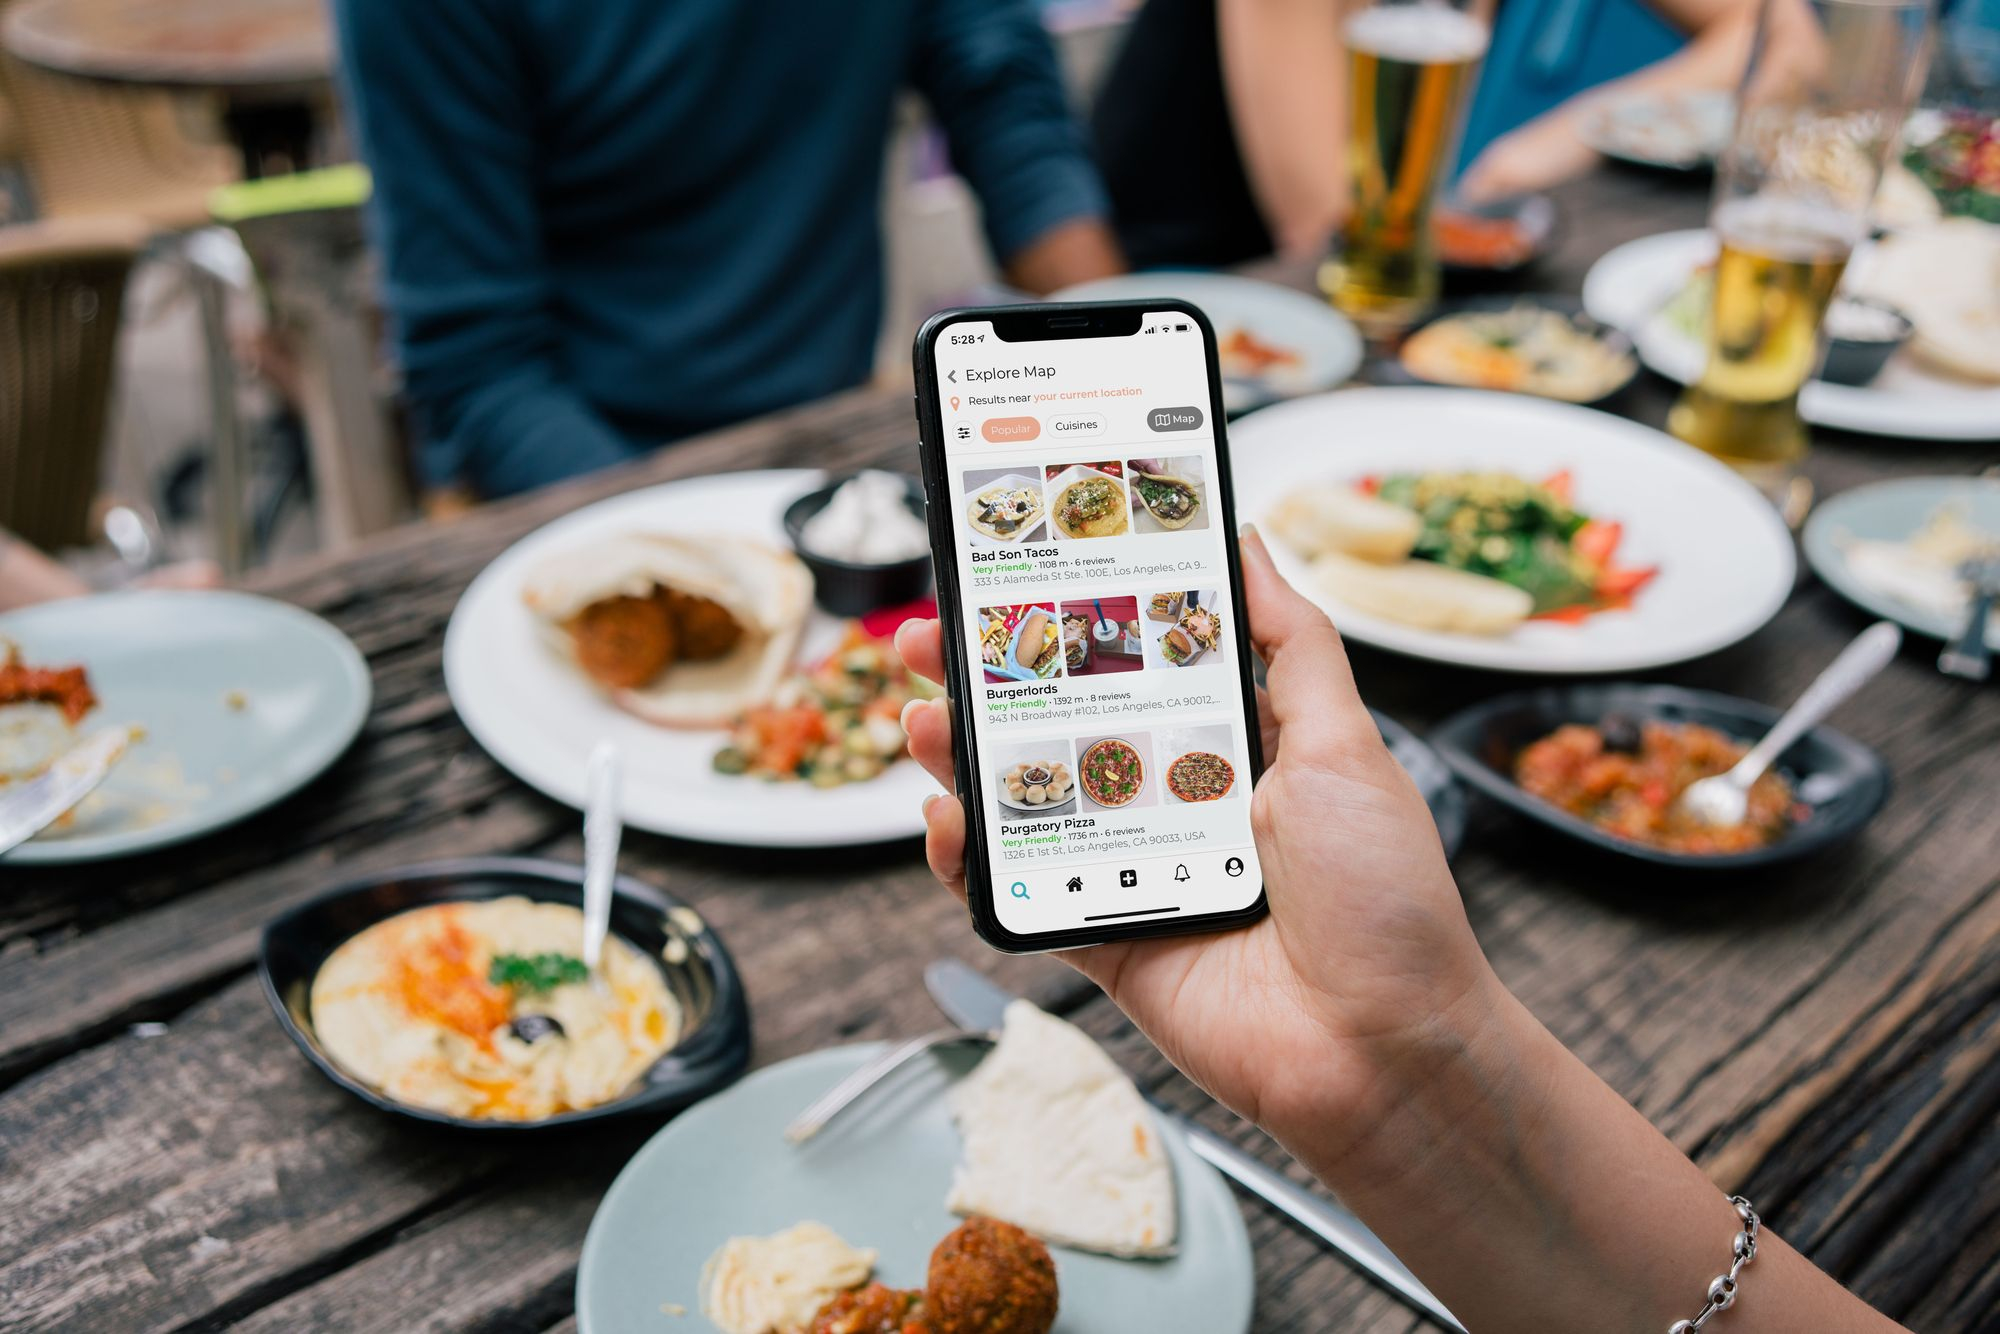 A woman at a table full of Mediterranean food using one hand to maneuver through an app on her smartphone.